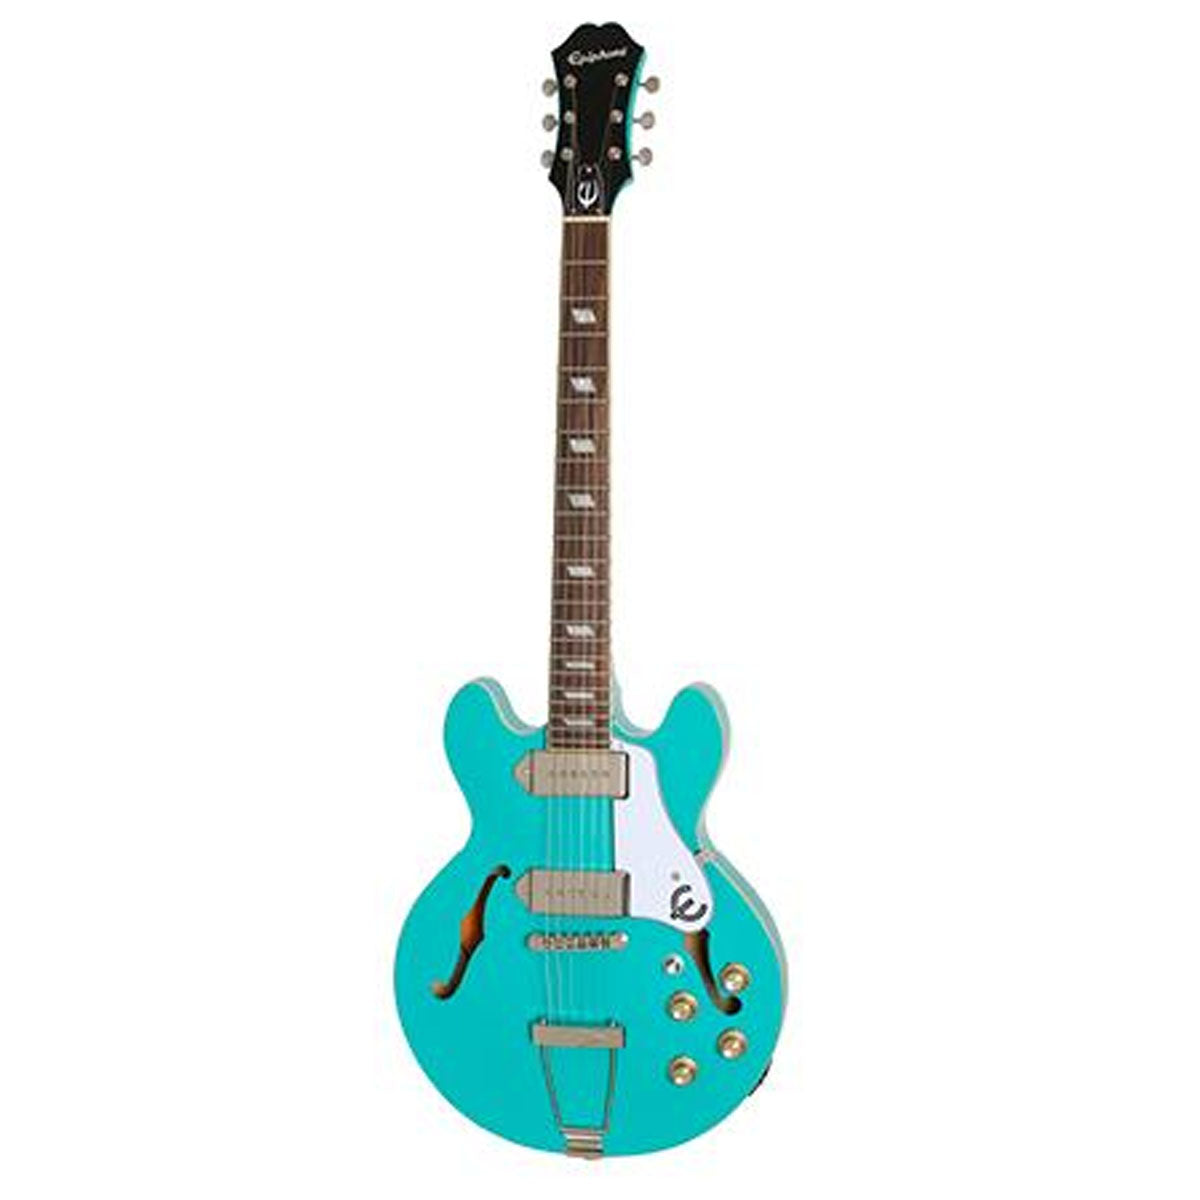 Epiphone Casino Coupe Electric Guitar HollowBody Turquoise - ETCCTQNH1